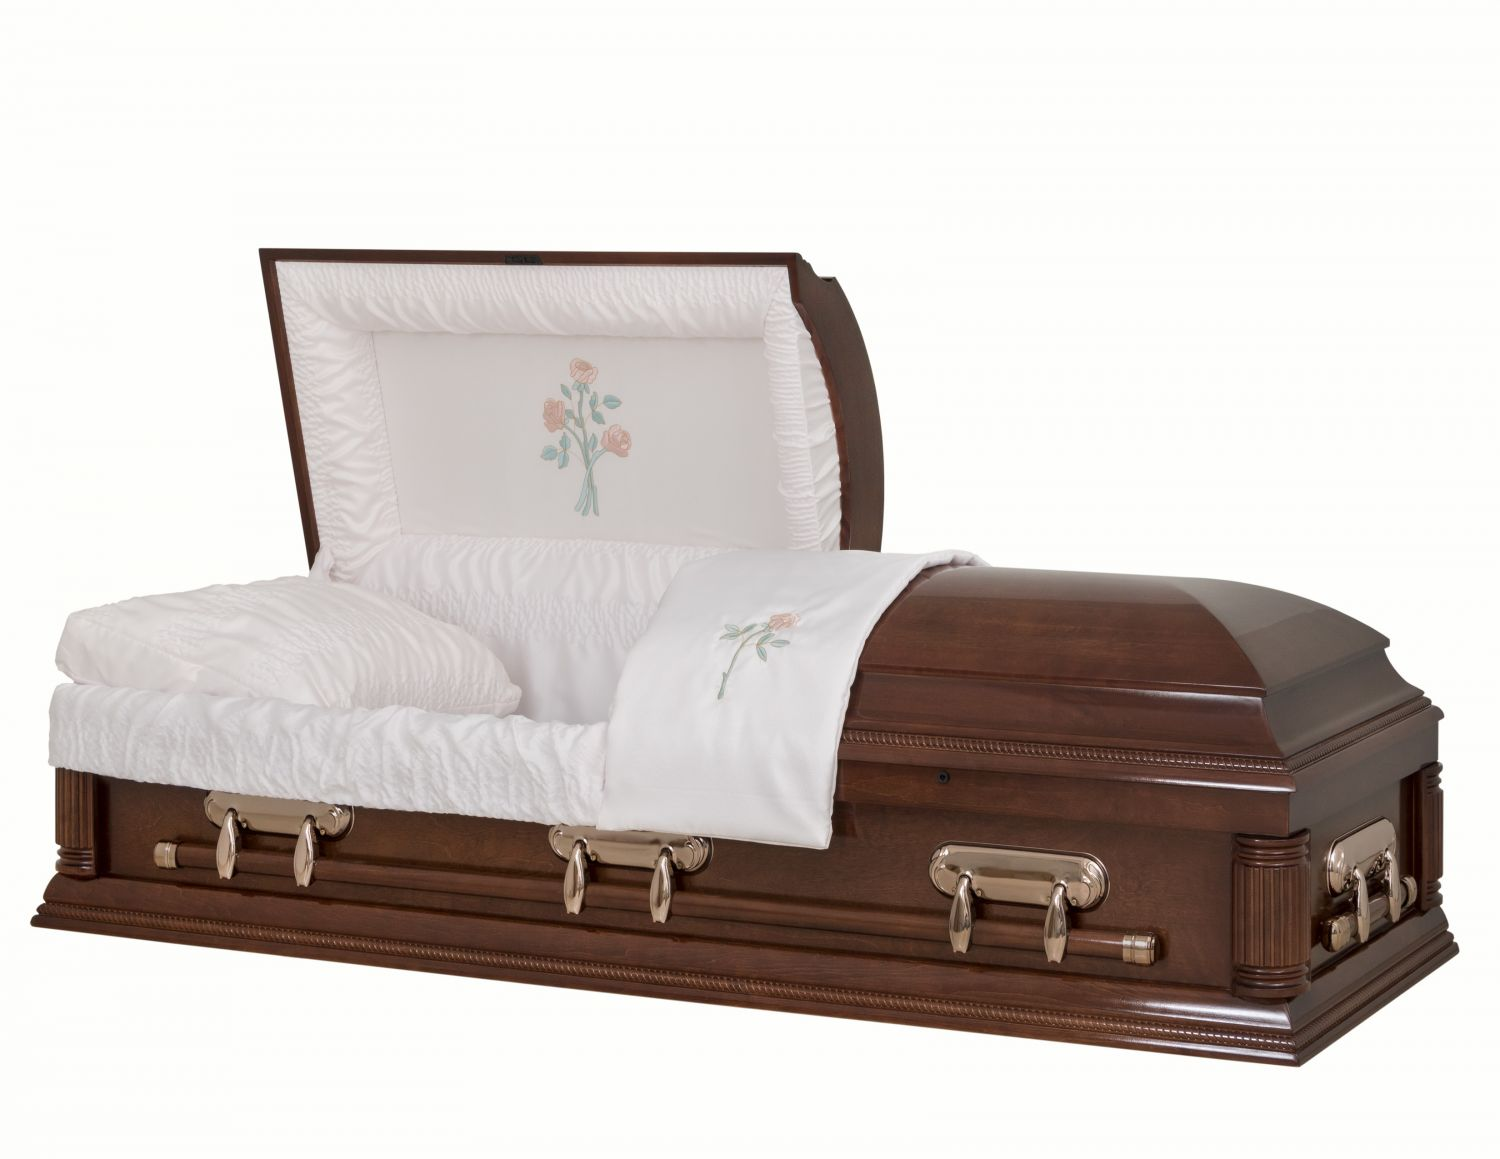 Concept Caskets 18204-00806-N POPLAR CASKET POLISHED  CREPE  CHERRY  MATRESS YES H2110-1    3 X 1 COPPER